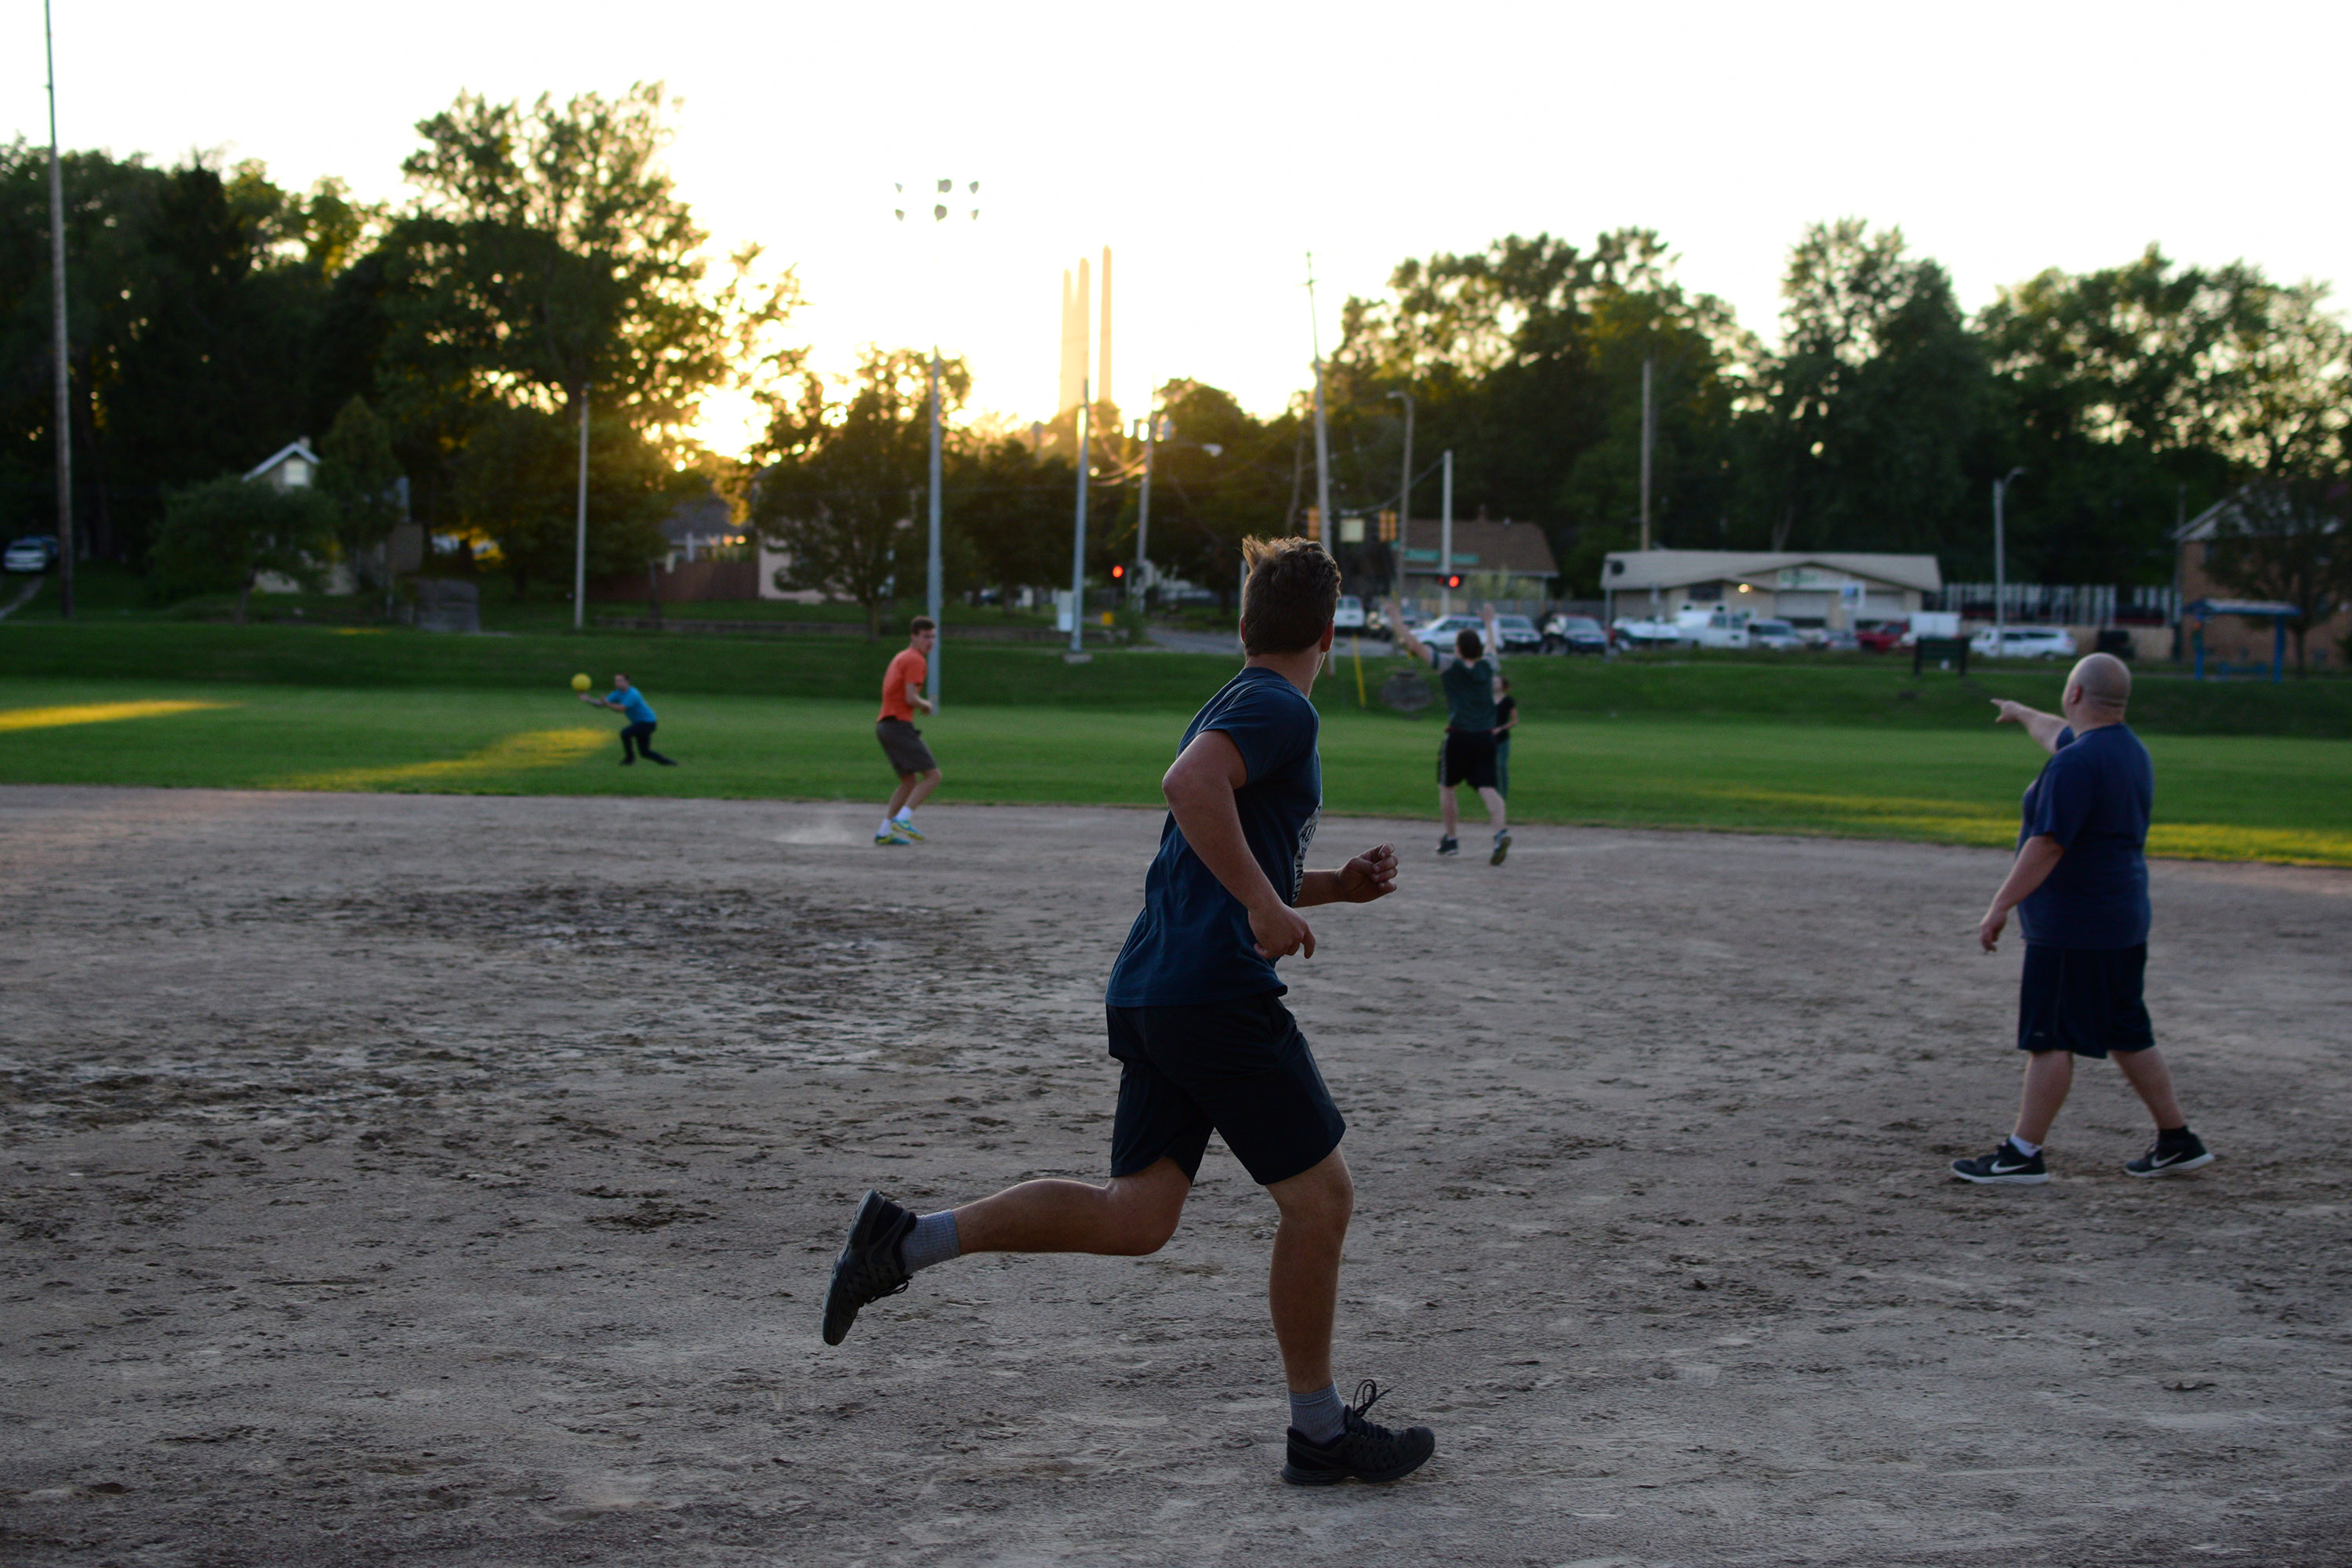 Playing kickball in Sycamore park with Cody's group